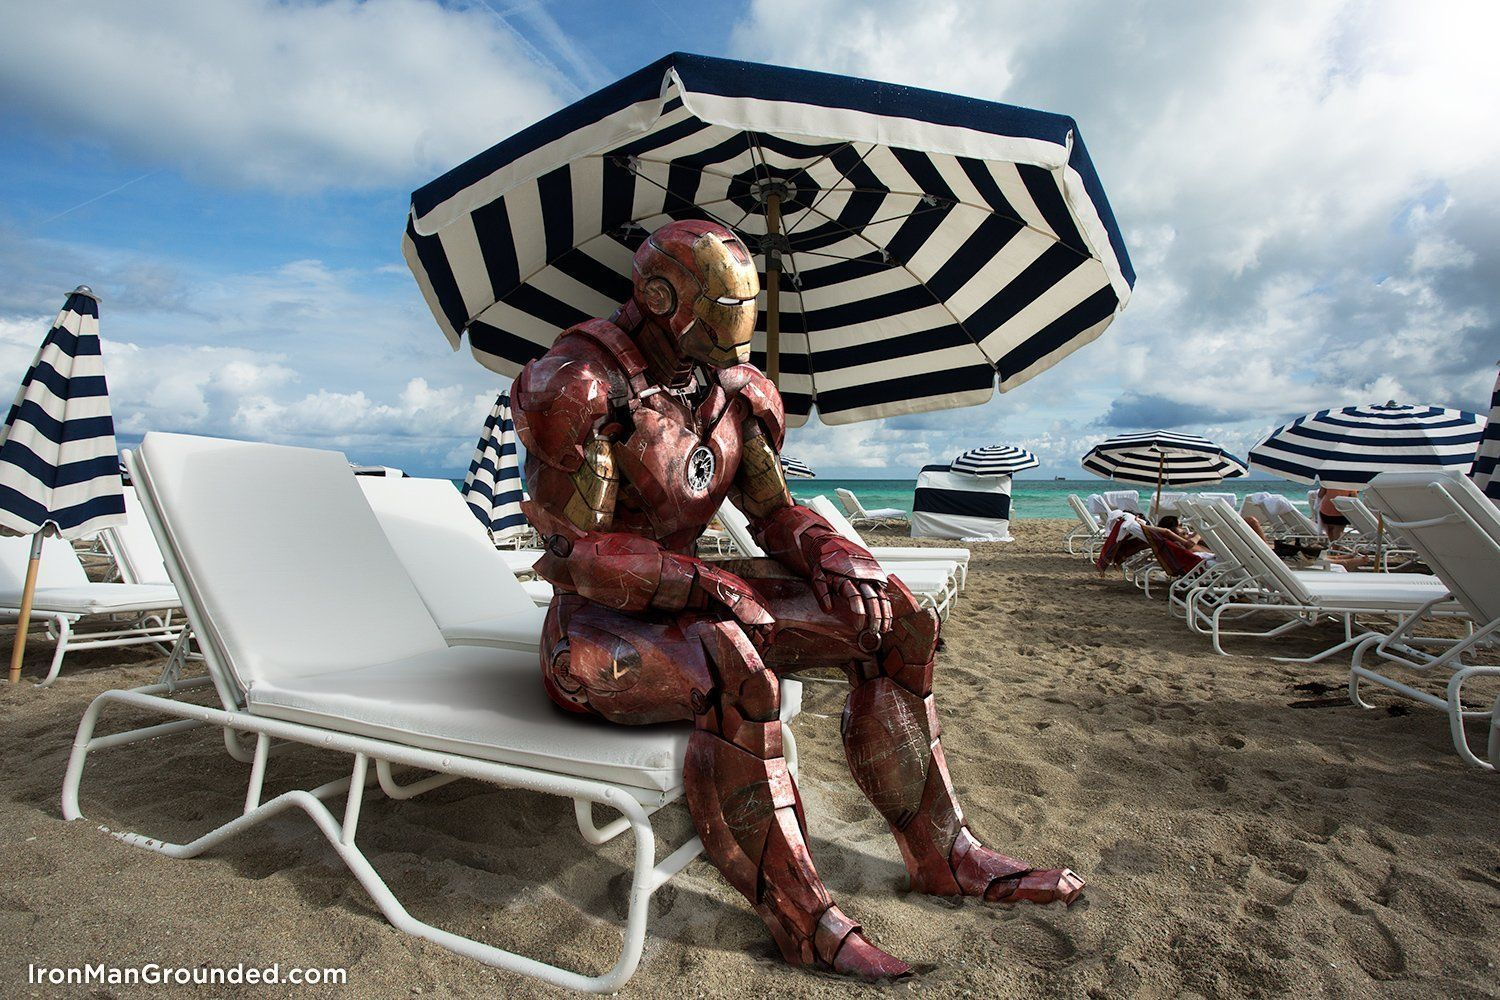 iron_man_grounded_plage